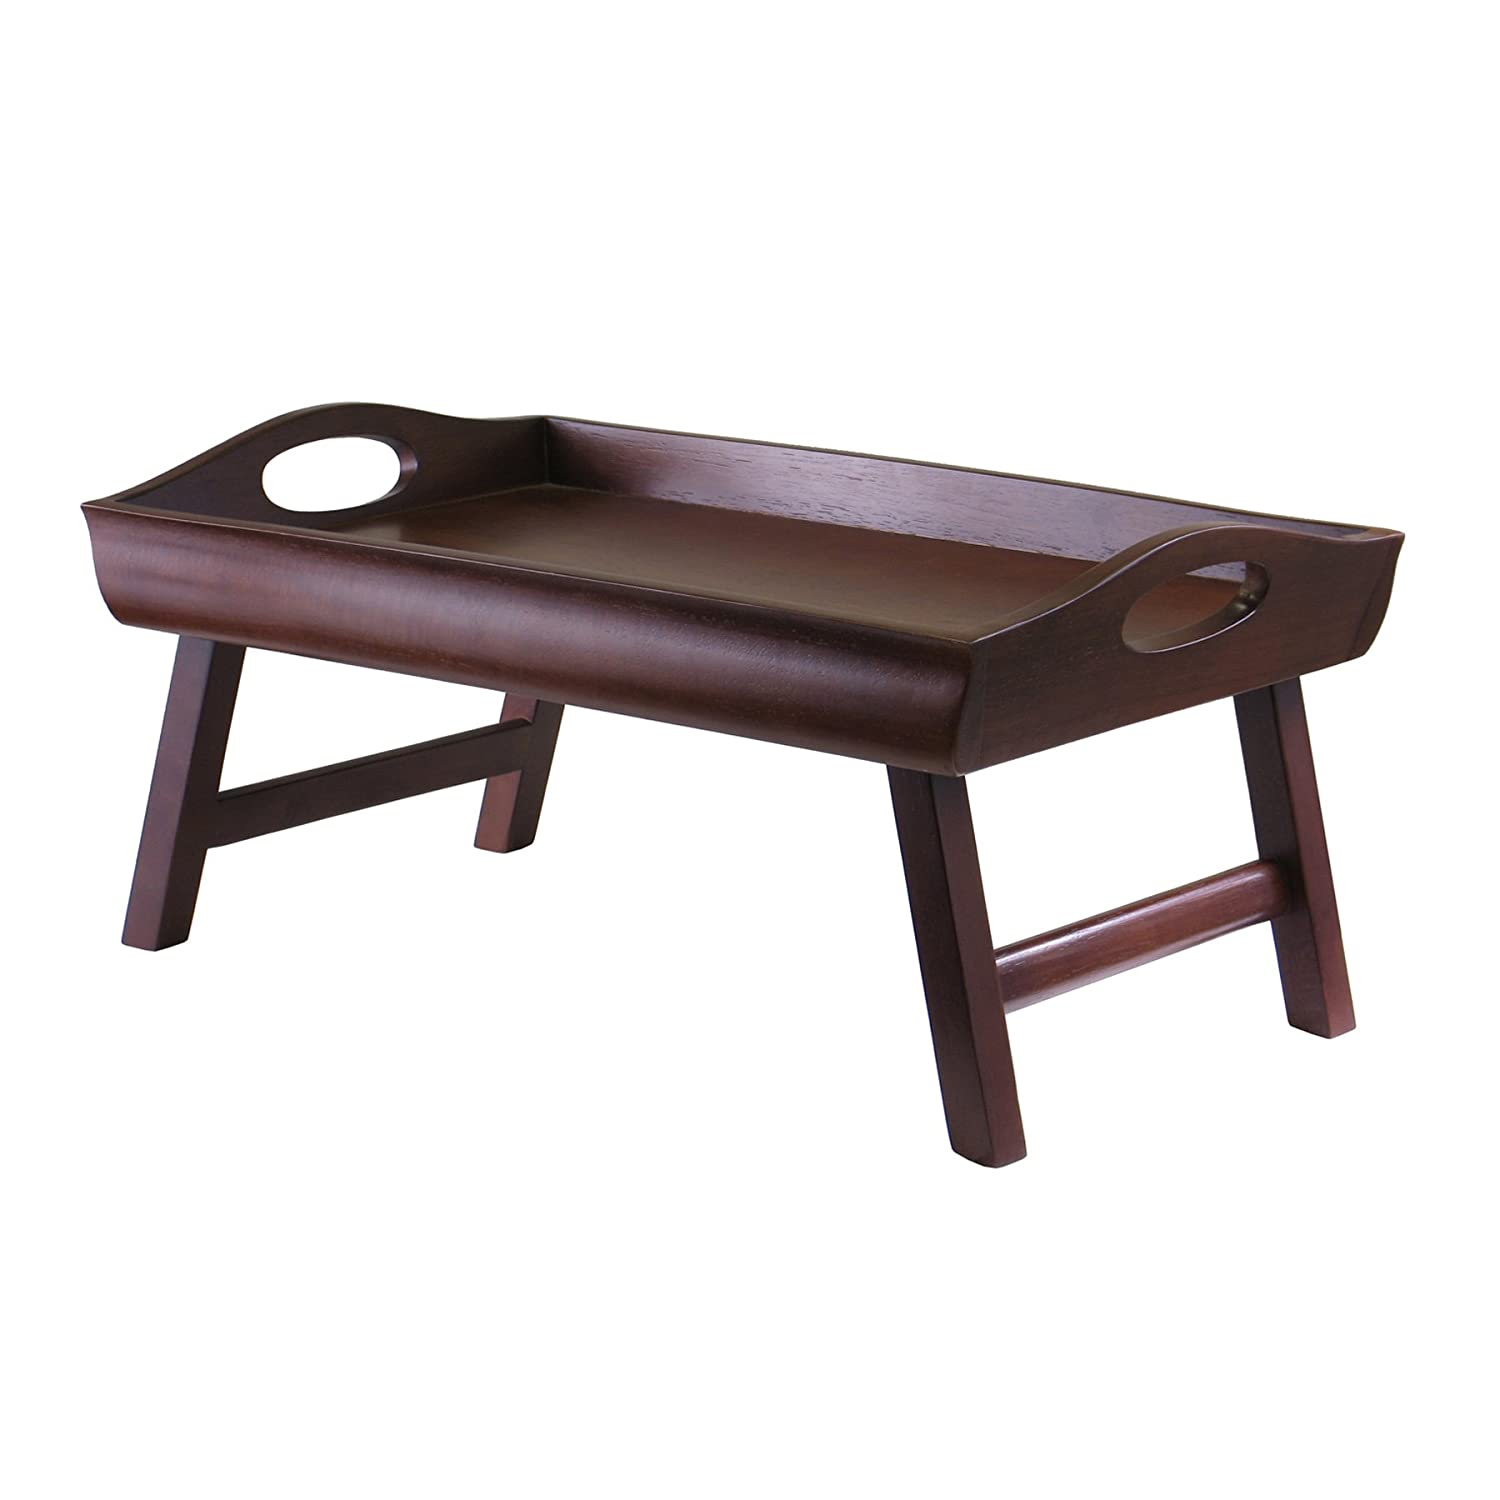 Wonderful Amazon.com: Winsome Wood Sedona Bed Tray Curved Side, Foldable Legs, Large  Handle: Kitchen U0026 Dining